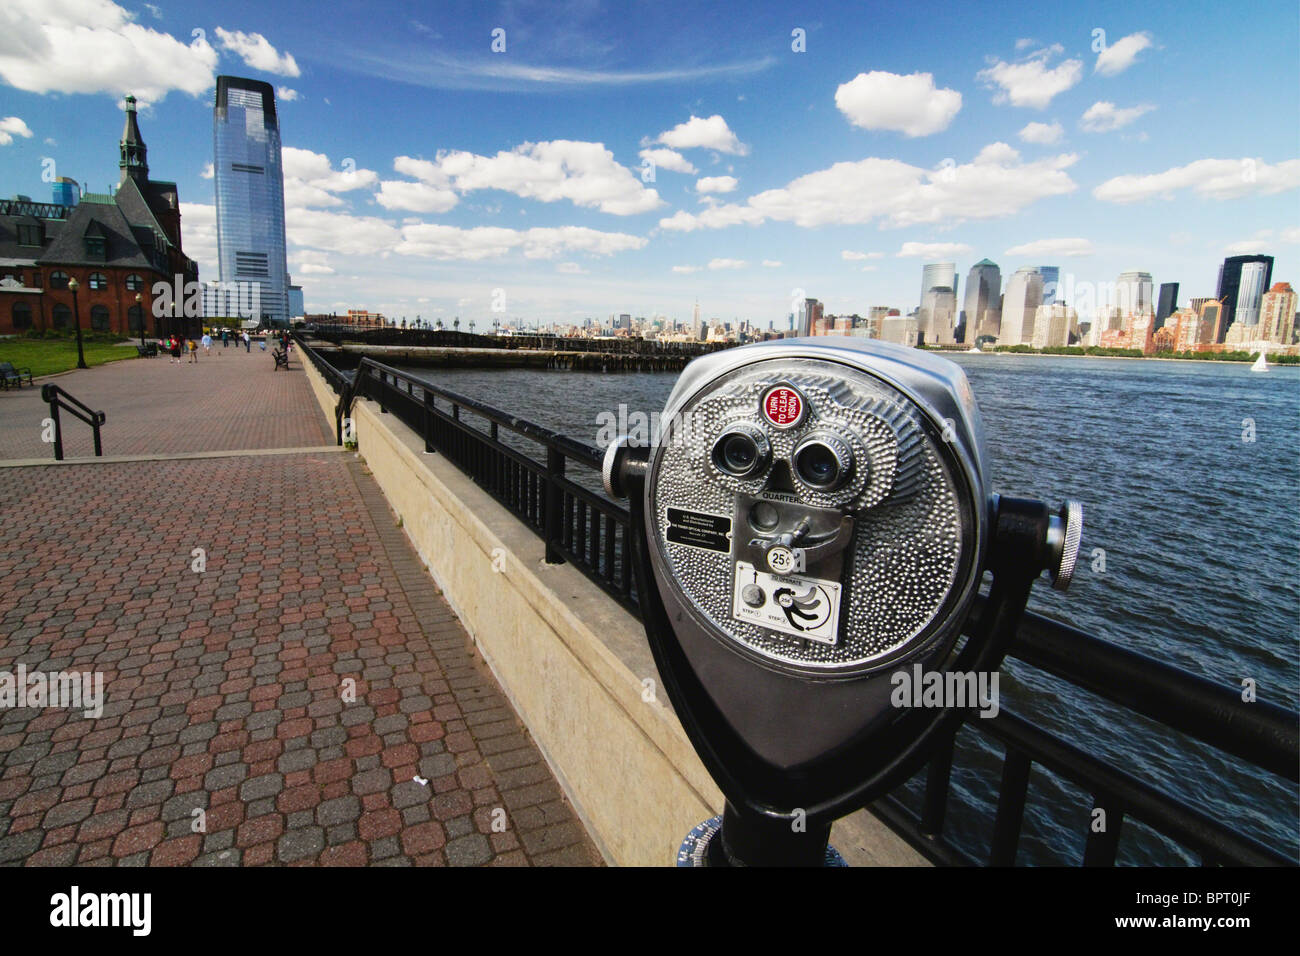 View of Lower Manhattan from Liberty State Park, New Jersey - Stock Image